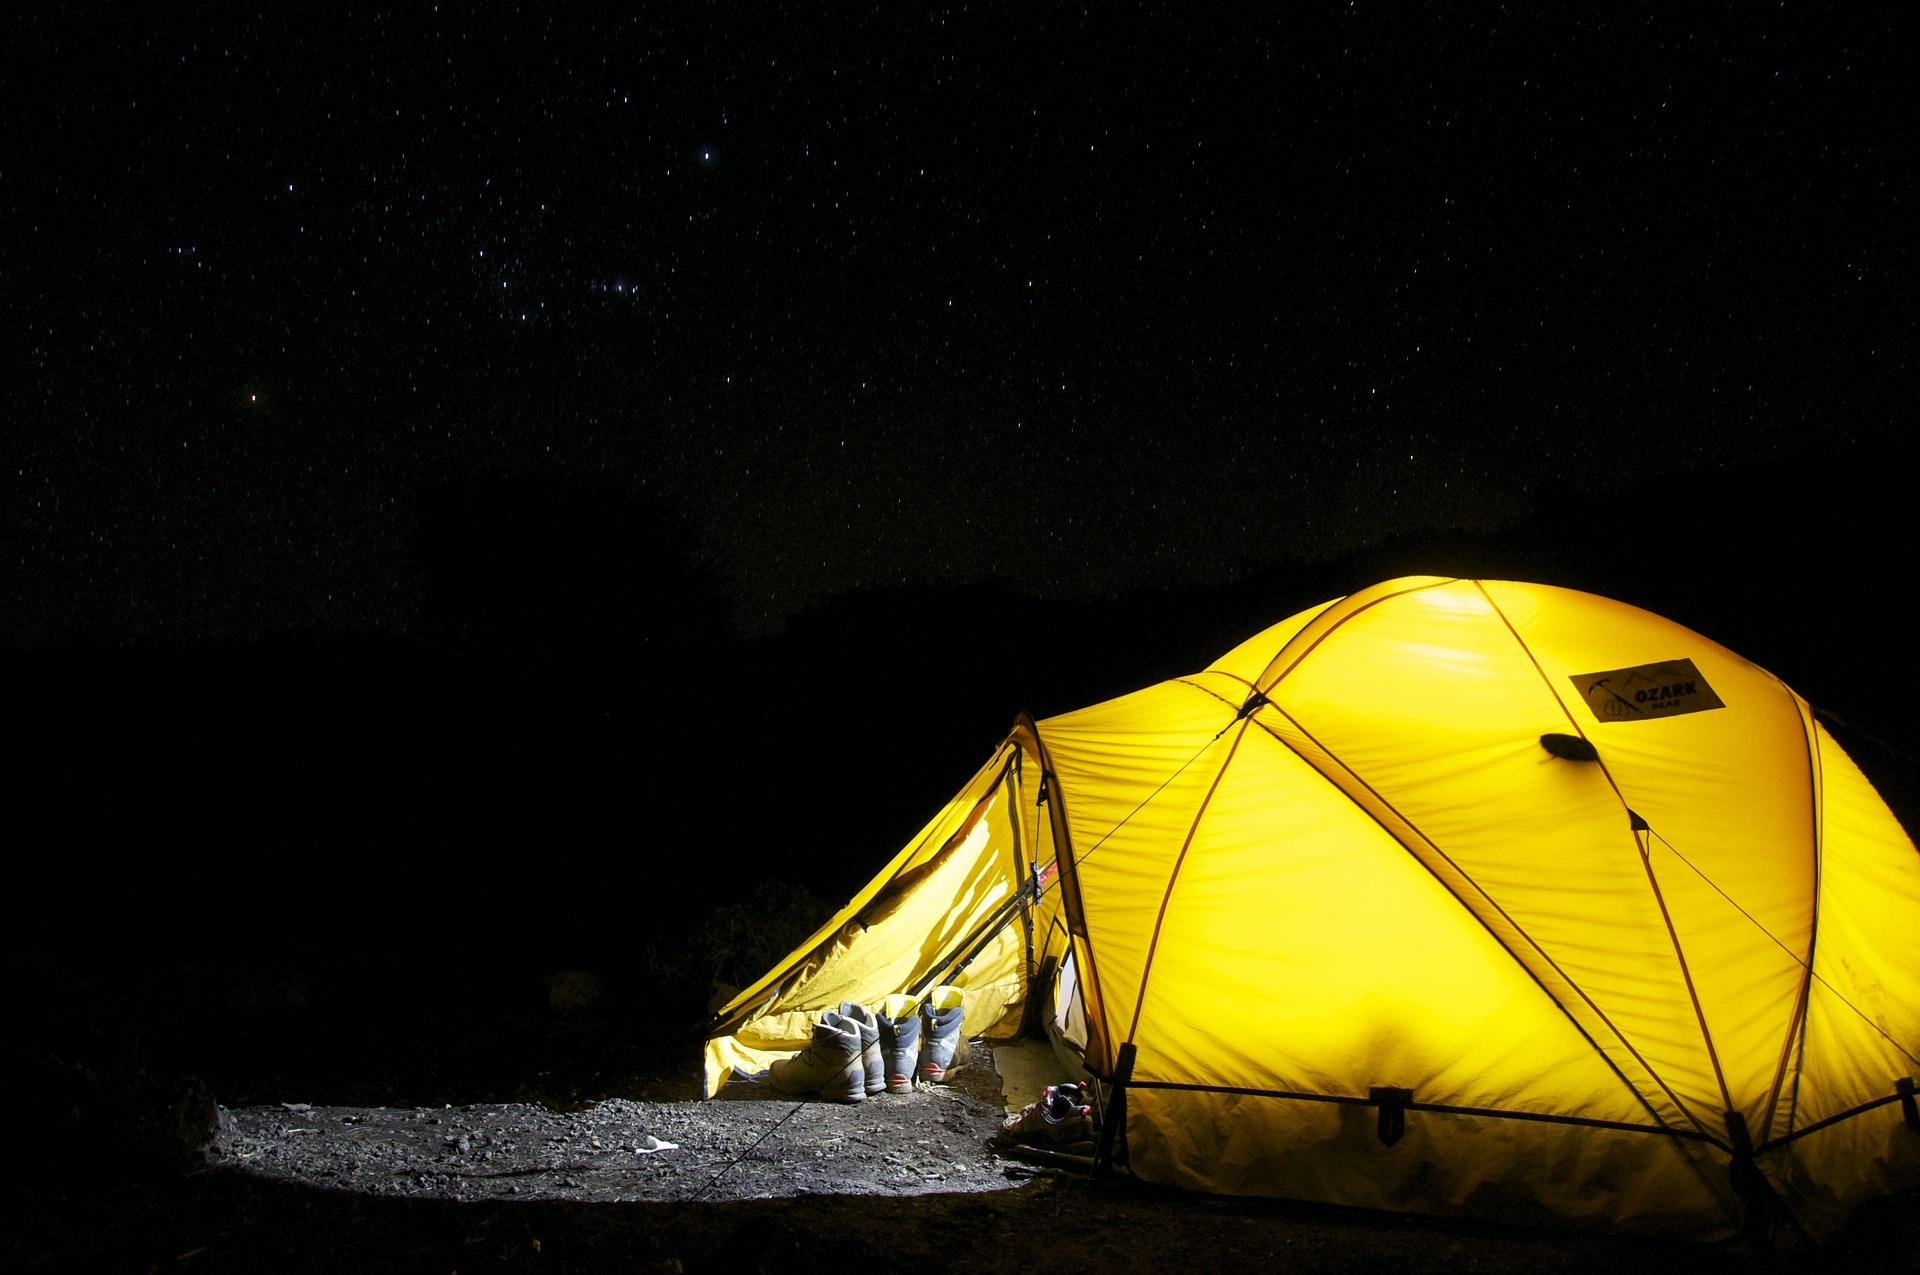 Camping tent placed underneath the stars